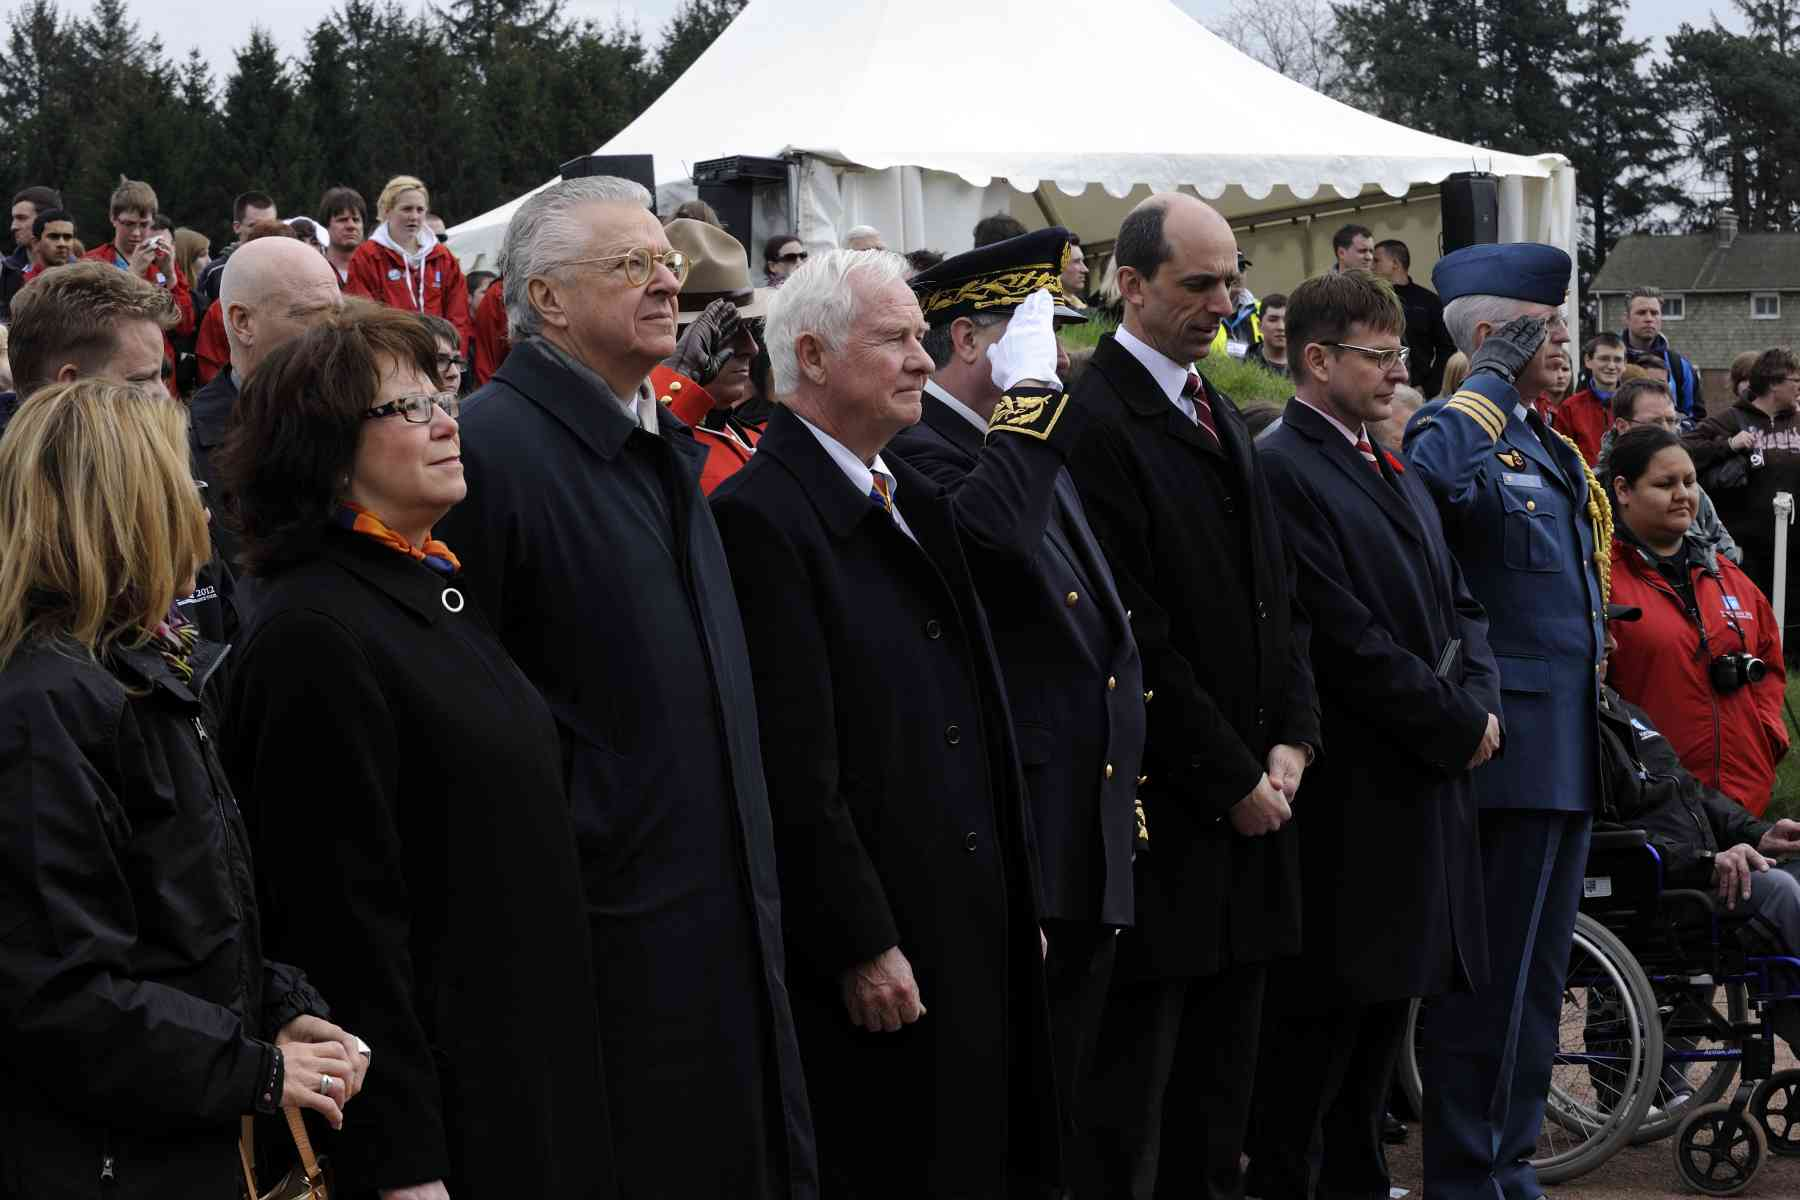 Steven Blaney, Minister of Veterans Affairs, also attended the event. During is time in France and Belgium, the Governor General will actually join a Canadian delegation and nearly 5 000 Canadian students to take part in special events commemorating the 95th anniversary of the Battle of Vimy Ridge.